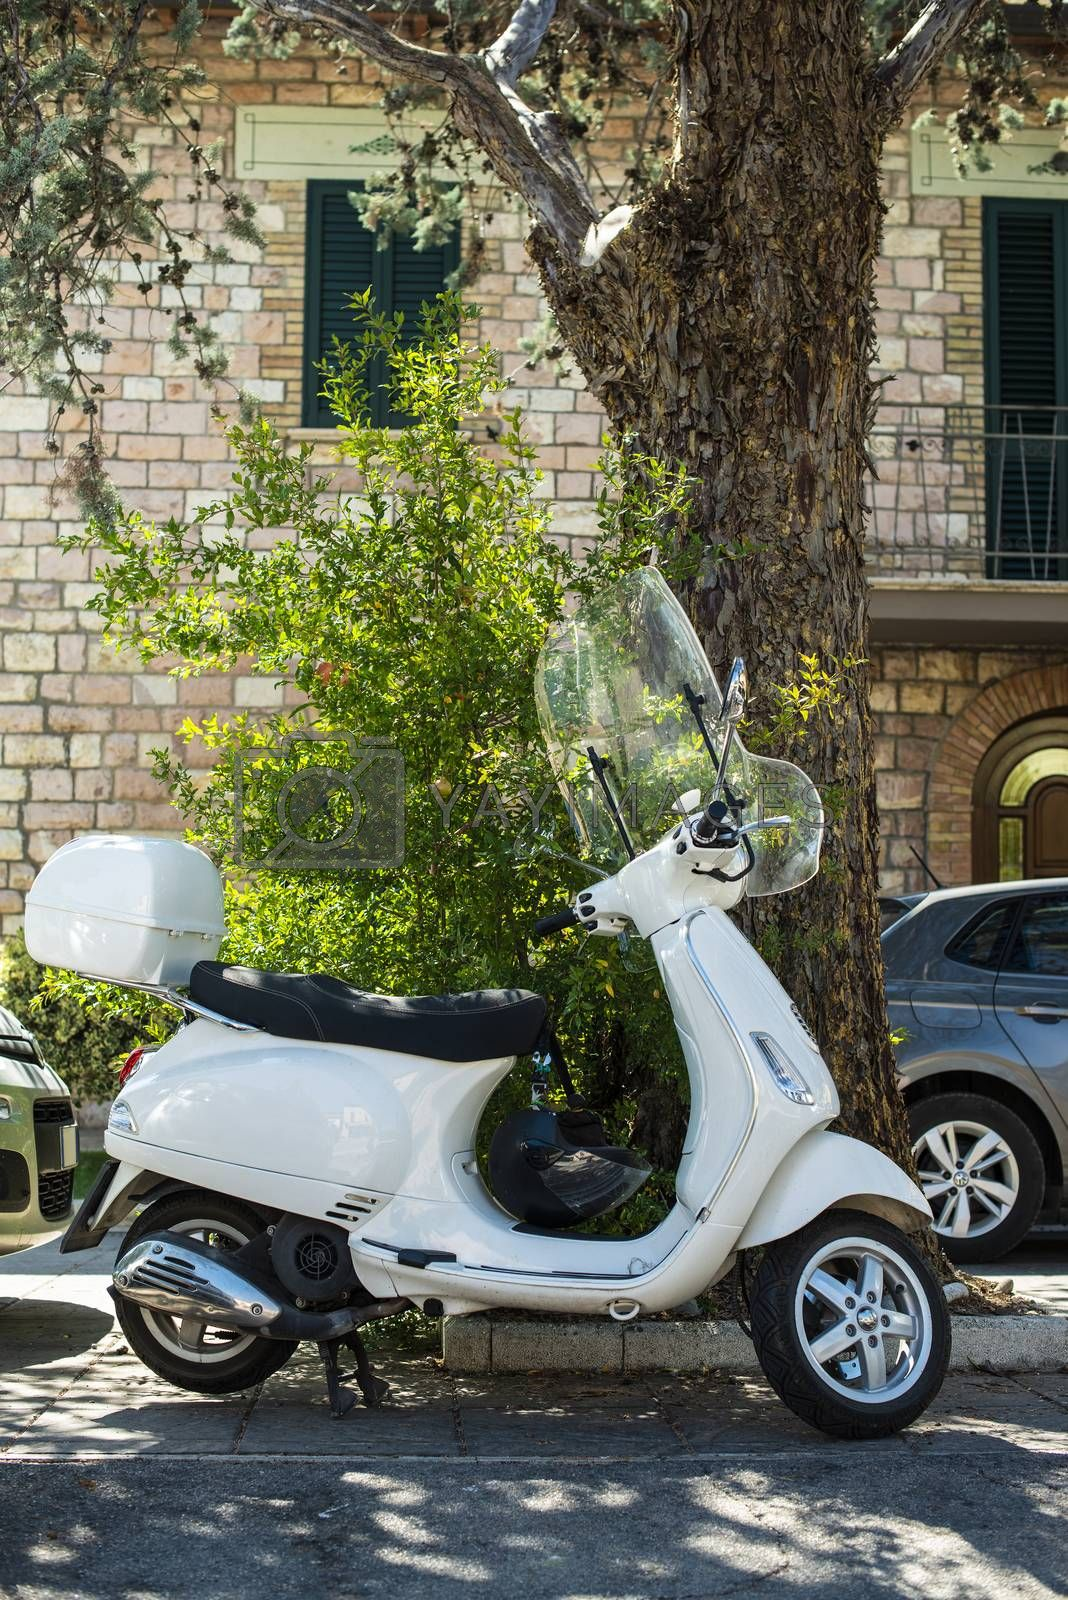 Typical italian motorbike in front of old house facade. Traditional white bike and ancient mediterranean architecture.